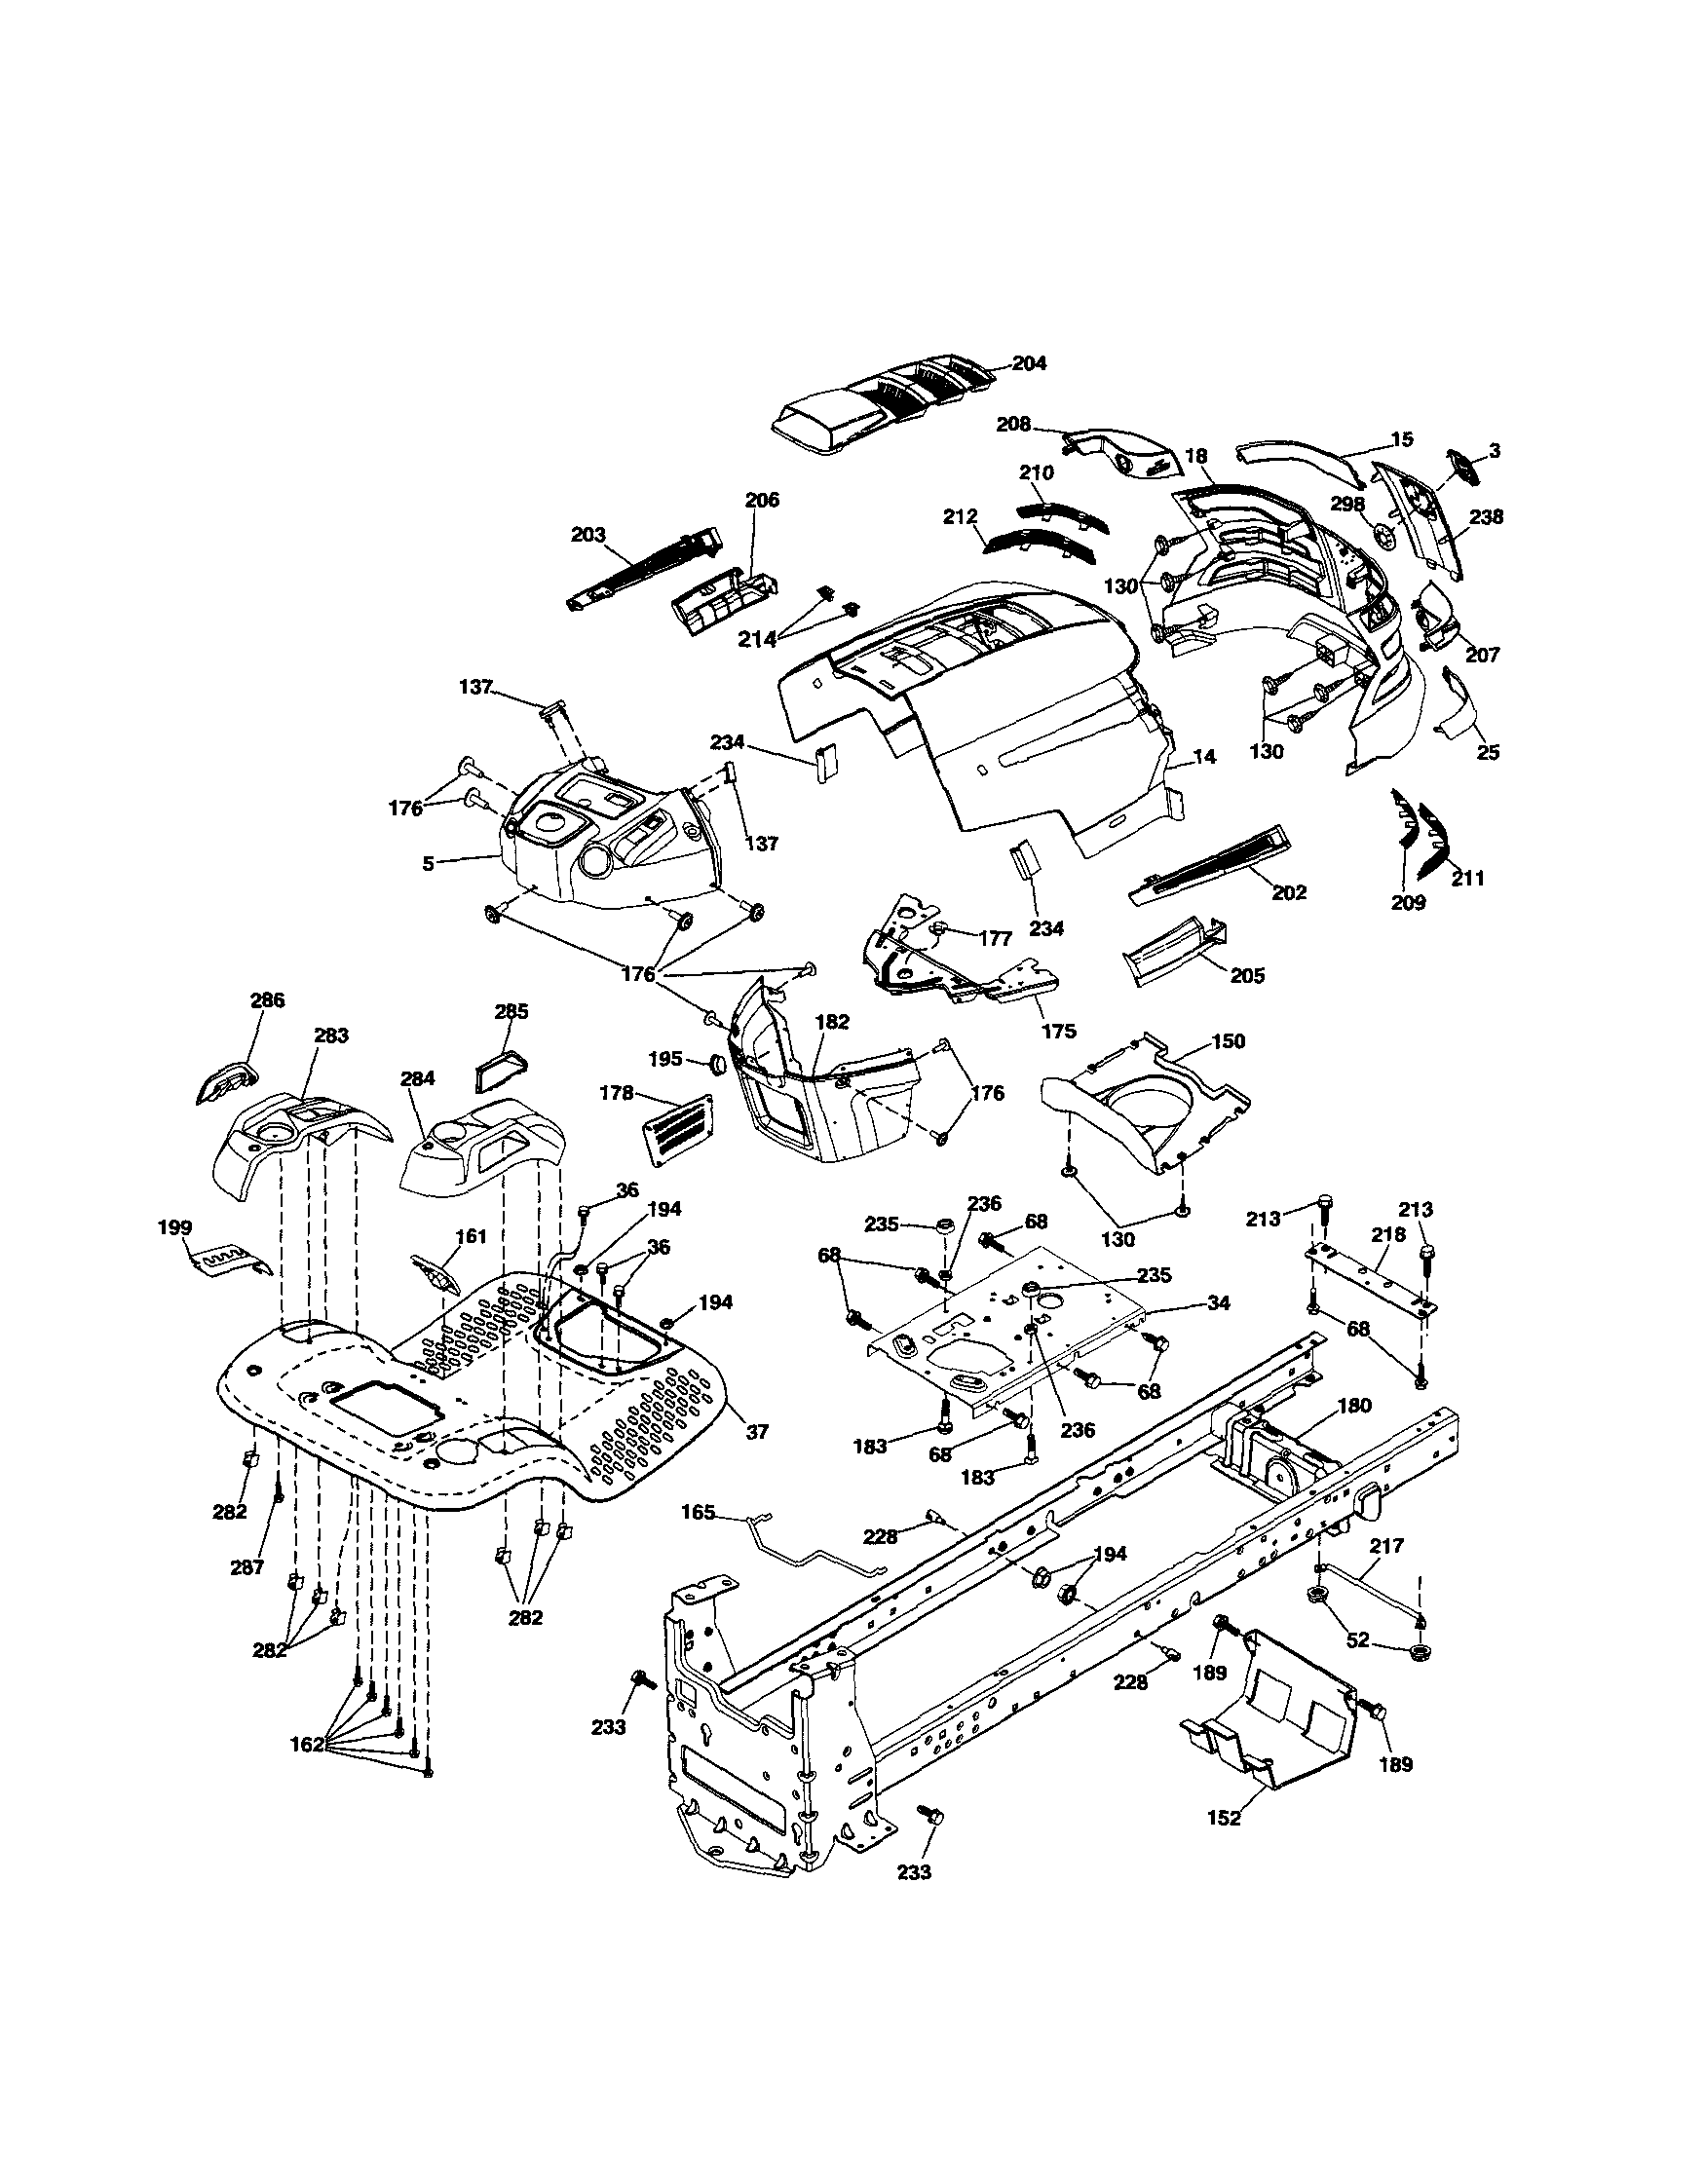 CHASSIS Diagram & Parts List for Model YTH2348 Husqvarna